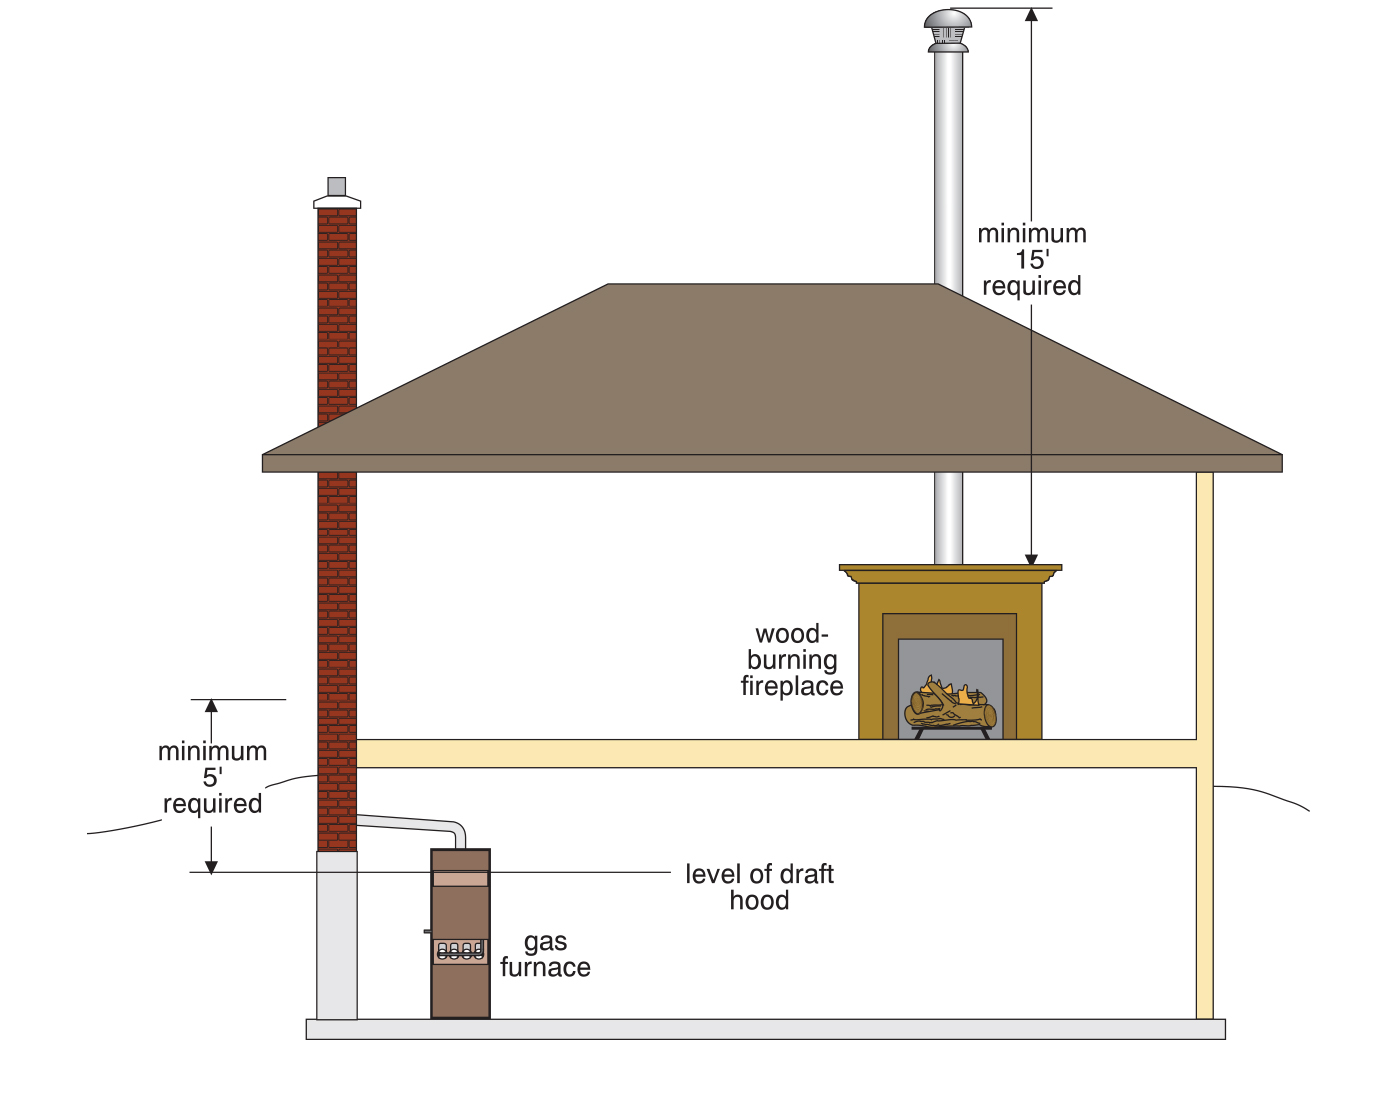 Illustration that shows height rules and minimum requirements for wood and gas appliances.